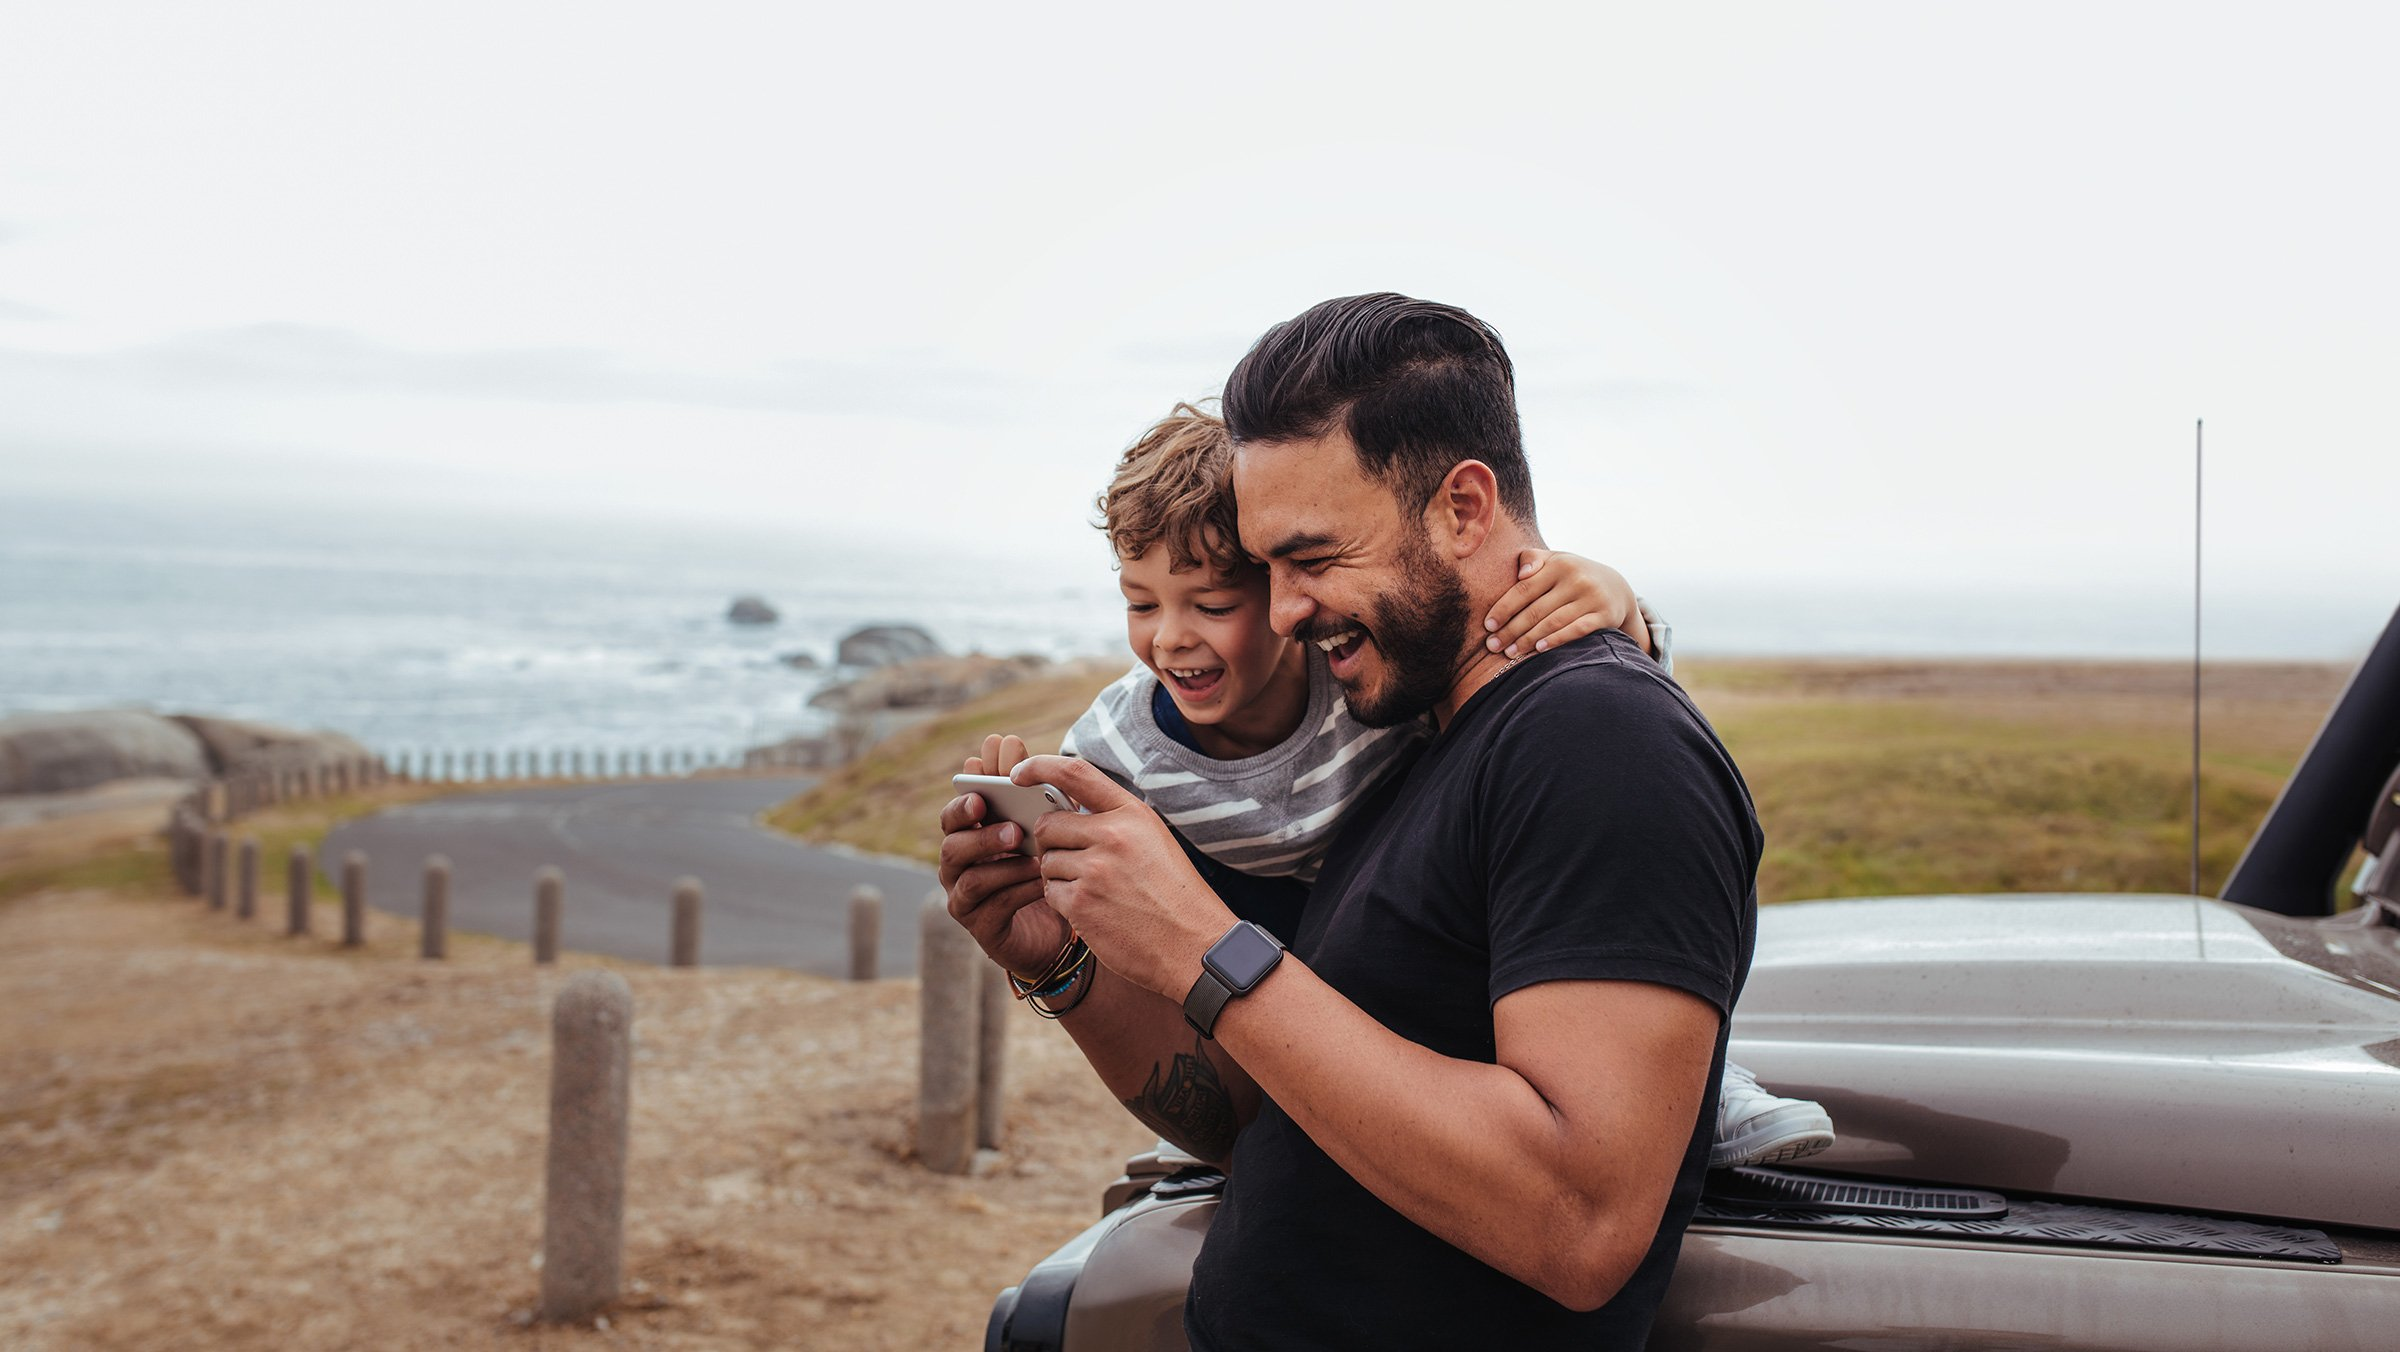 Roadtrip father and son